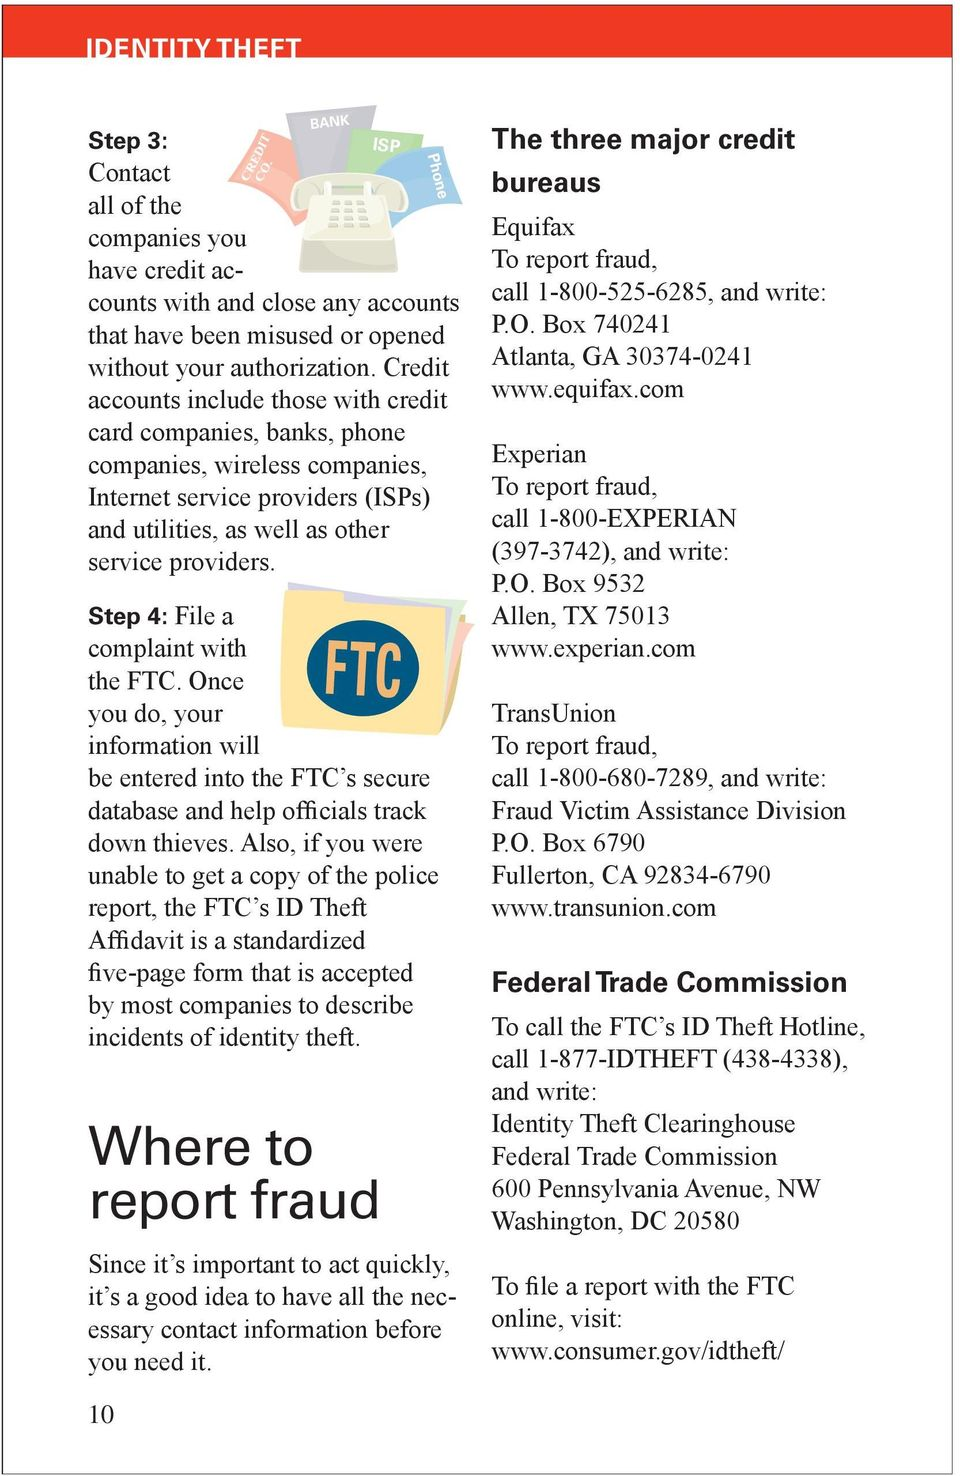 Step 4: File a complaint with the FTC. Once you do, your information will be entered into the FTC s secure database and help officials track down thieves.